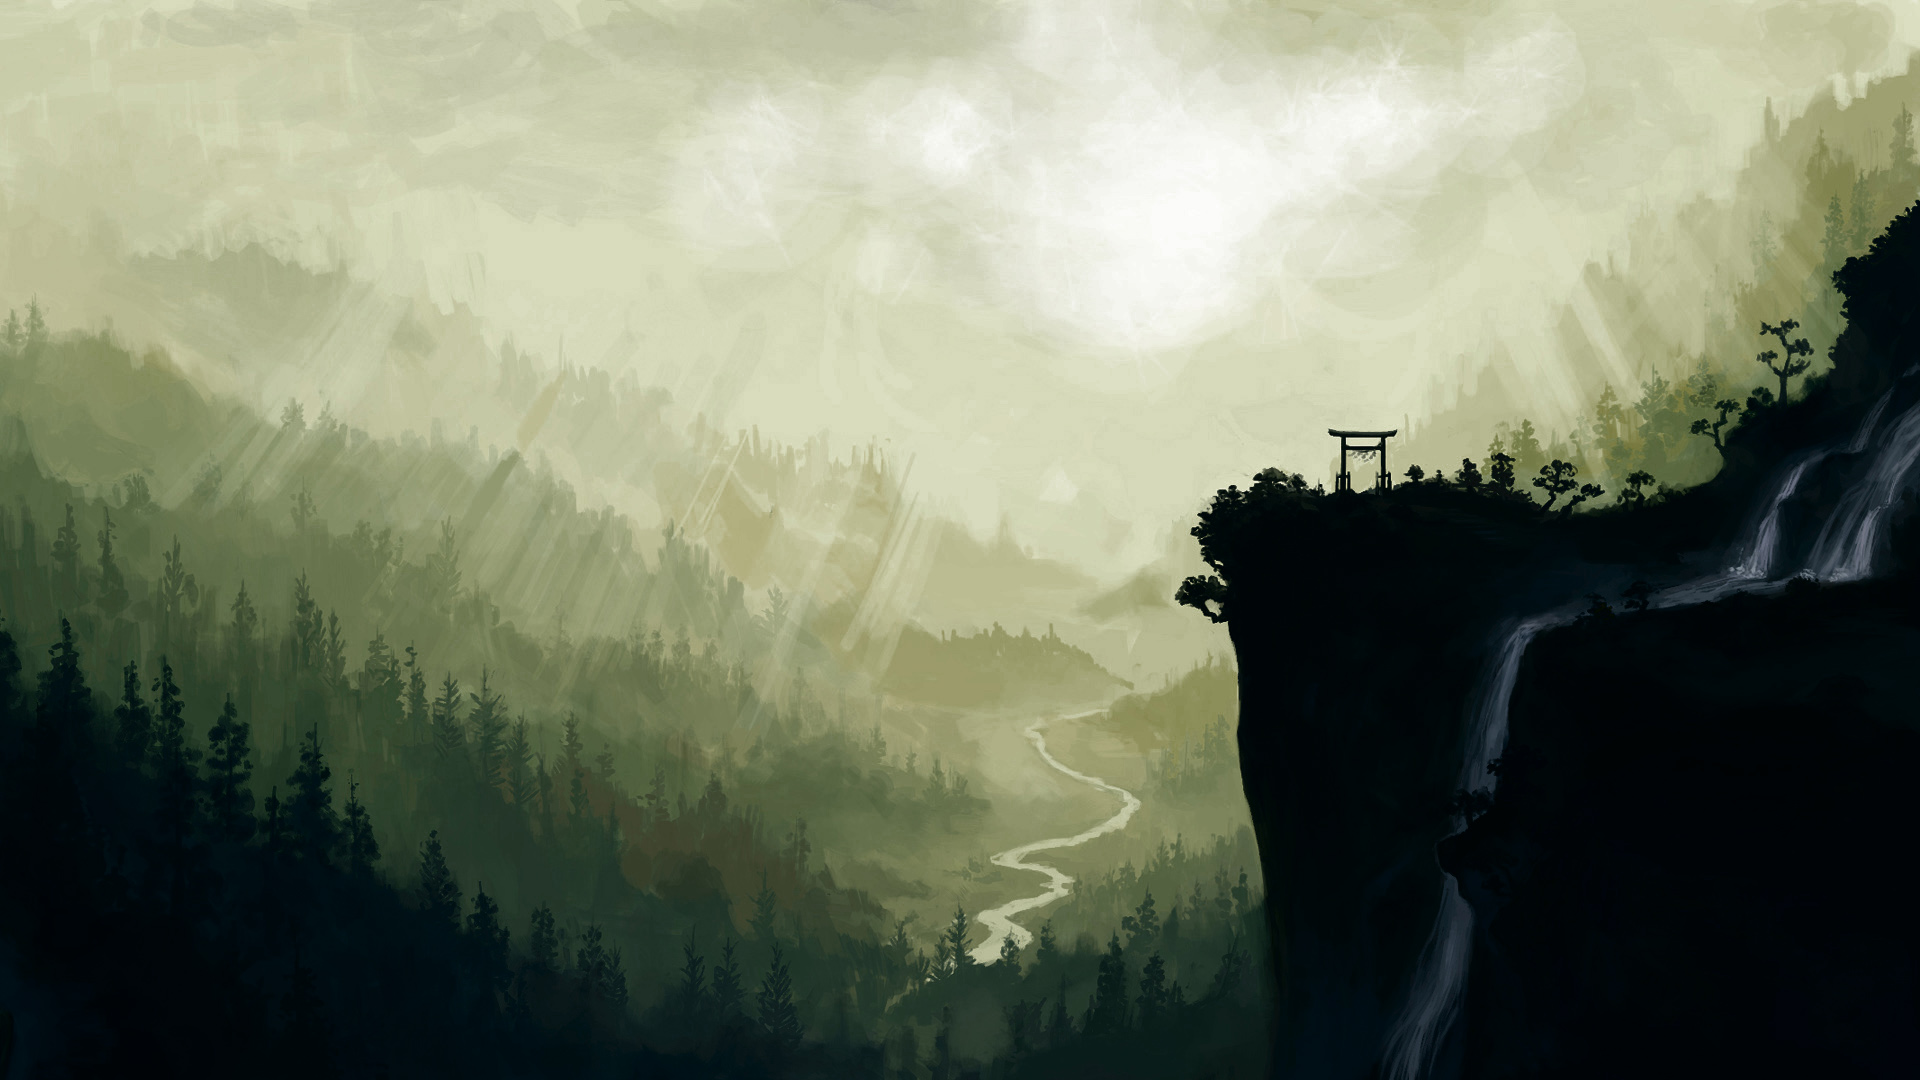 174 Drawing HD Wallpapers | Backgrounds - Wallpaper Abyss